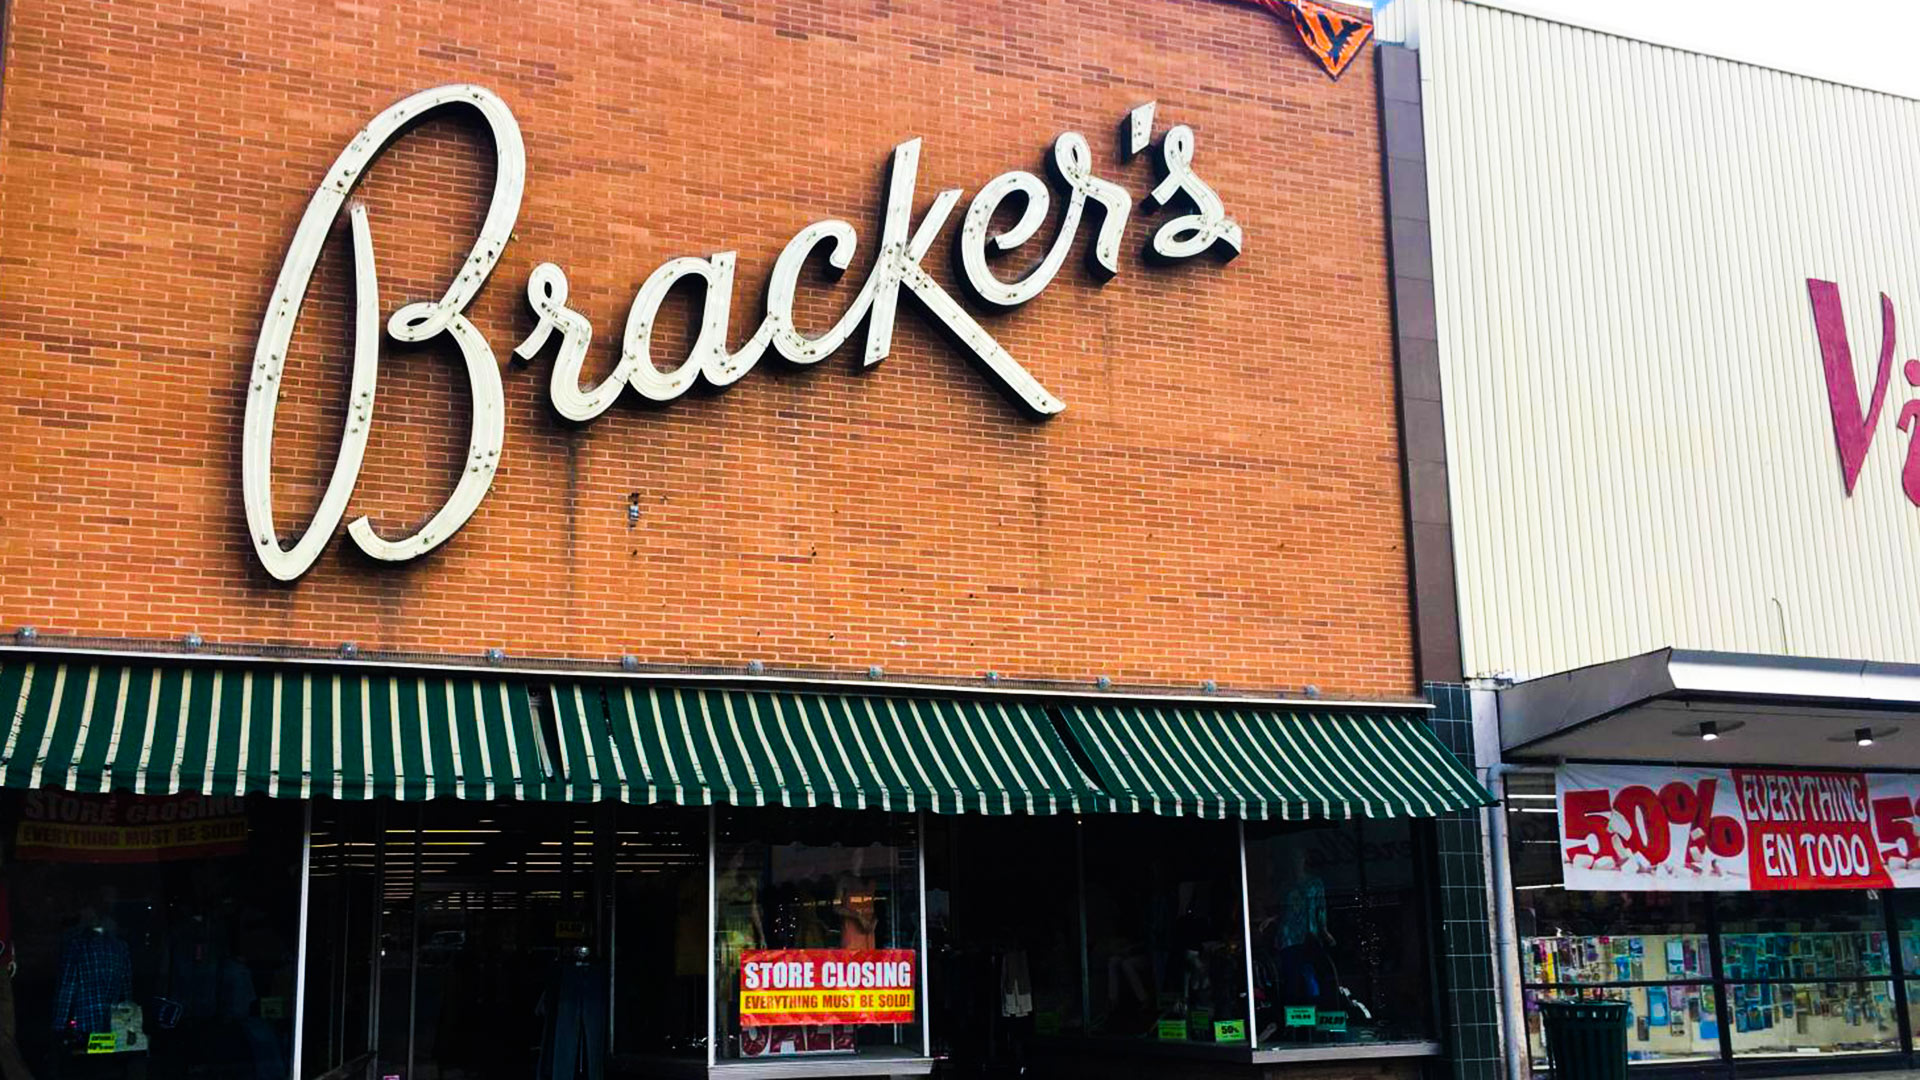 The Bracker's department store in Nogales, Arizona, is set to close Oct. 15.